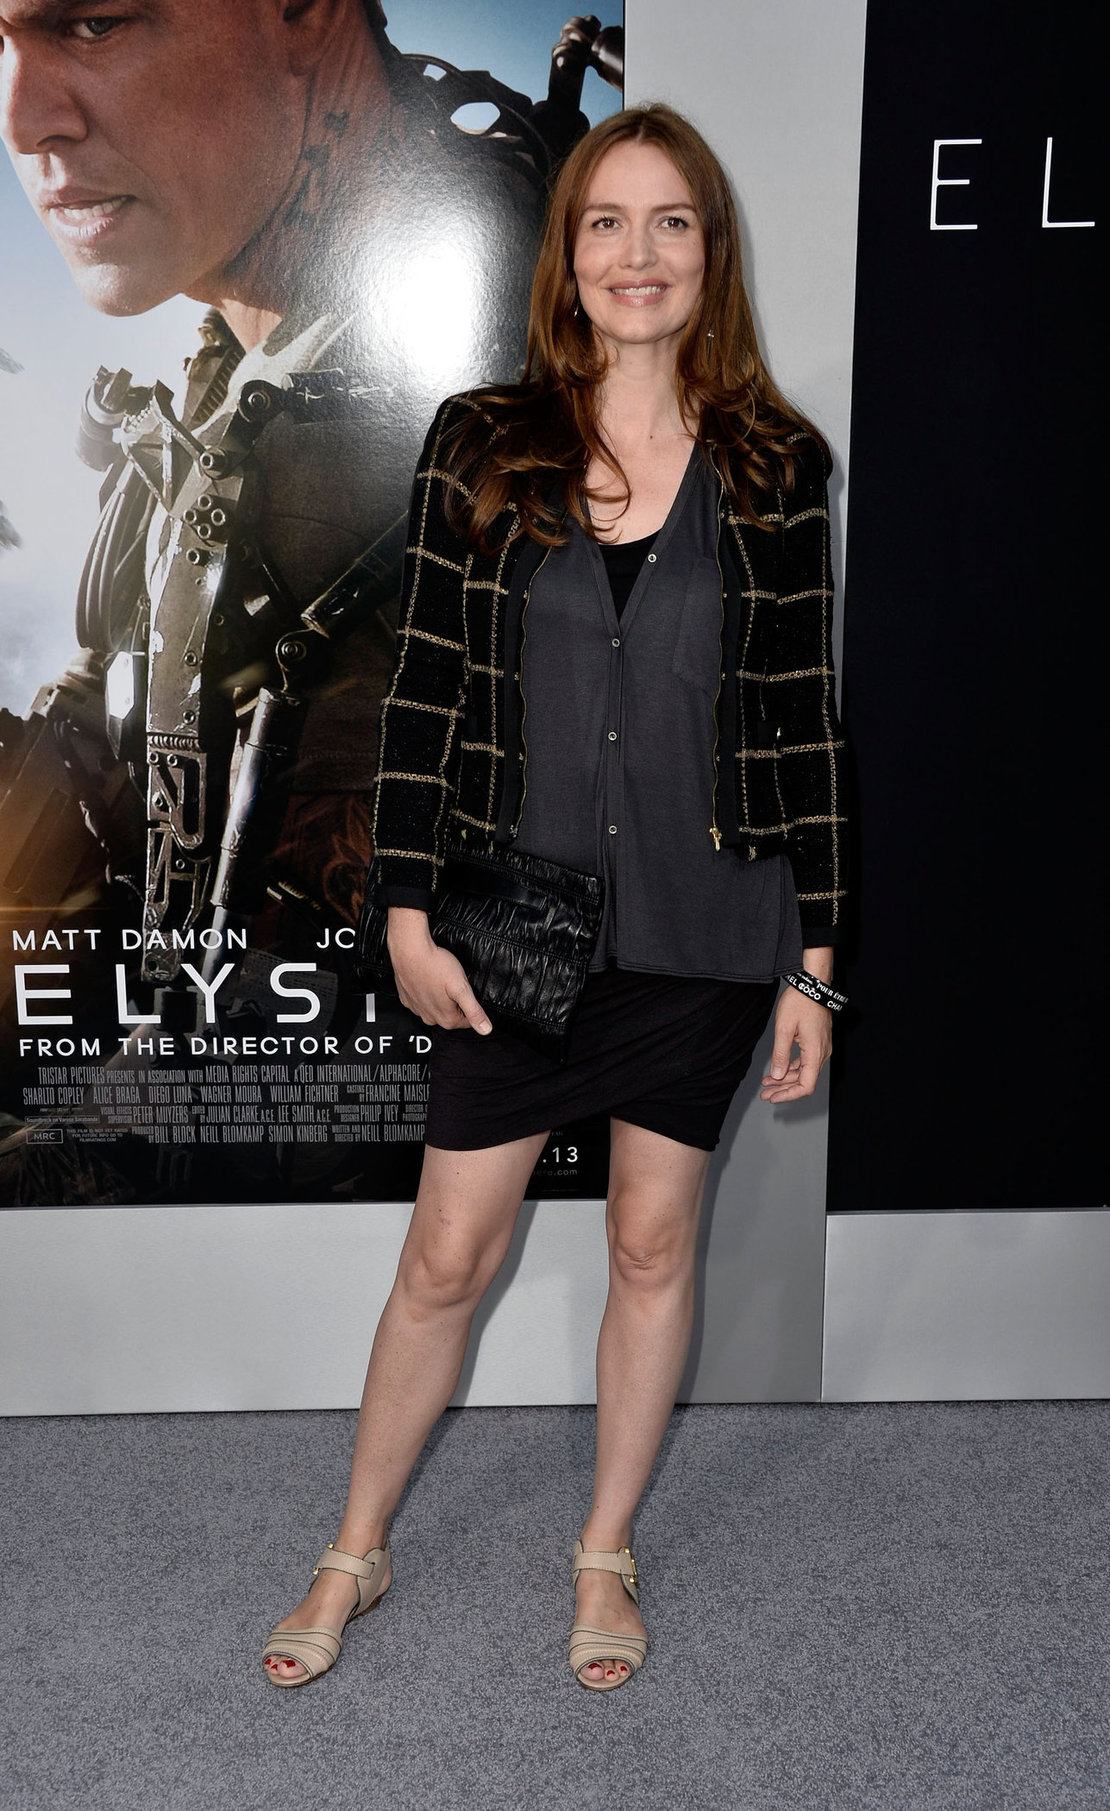 Saffron Burrows  Elysium  Los Angeles Premiere - Westwood, Aug. 7, 2013